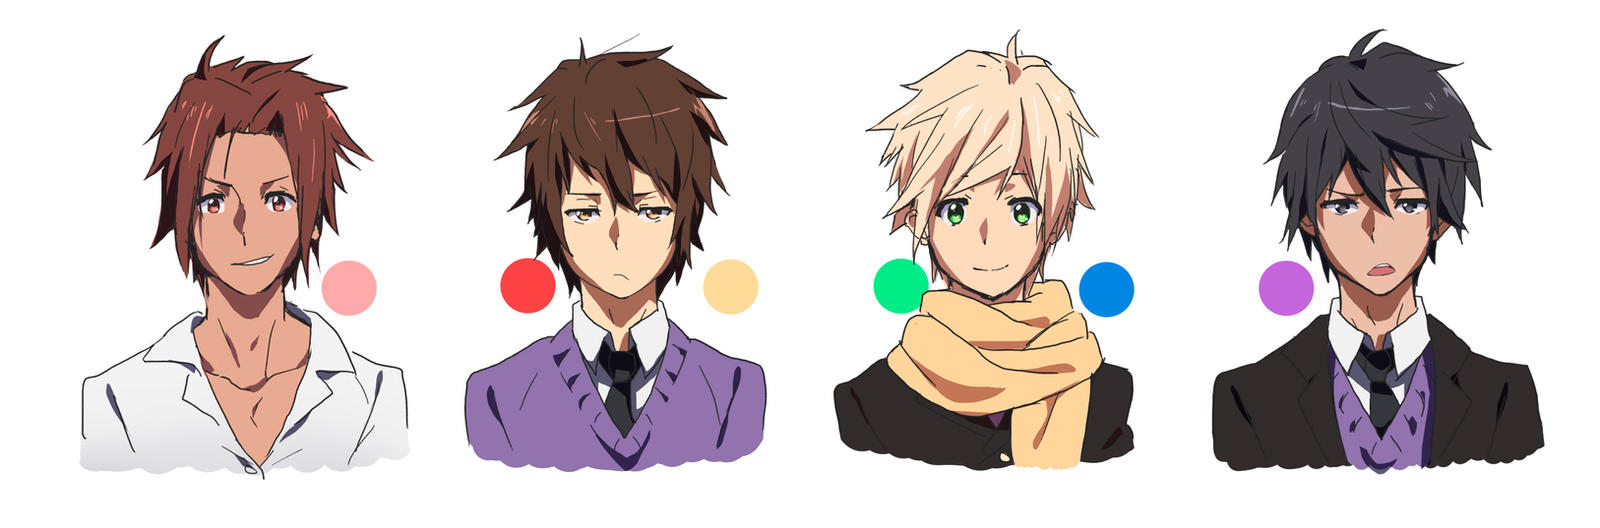 Anime Characters Boy : Male characters by moxie d on deviantart